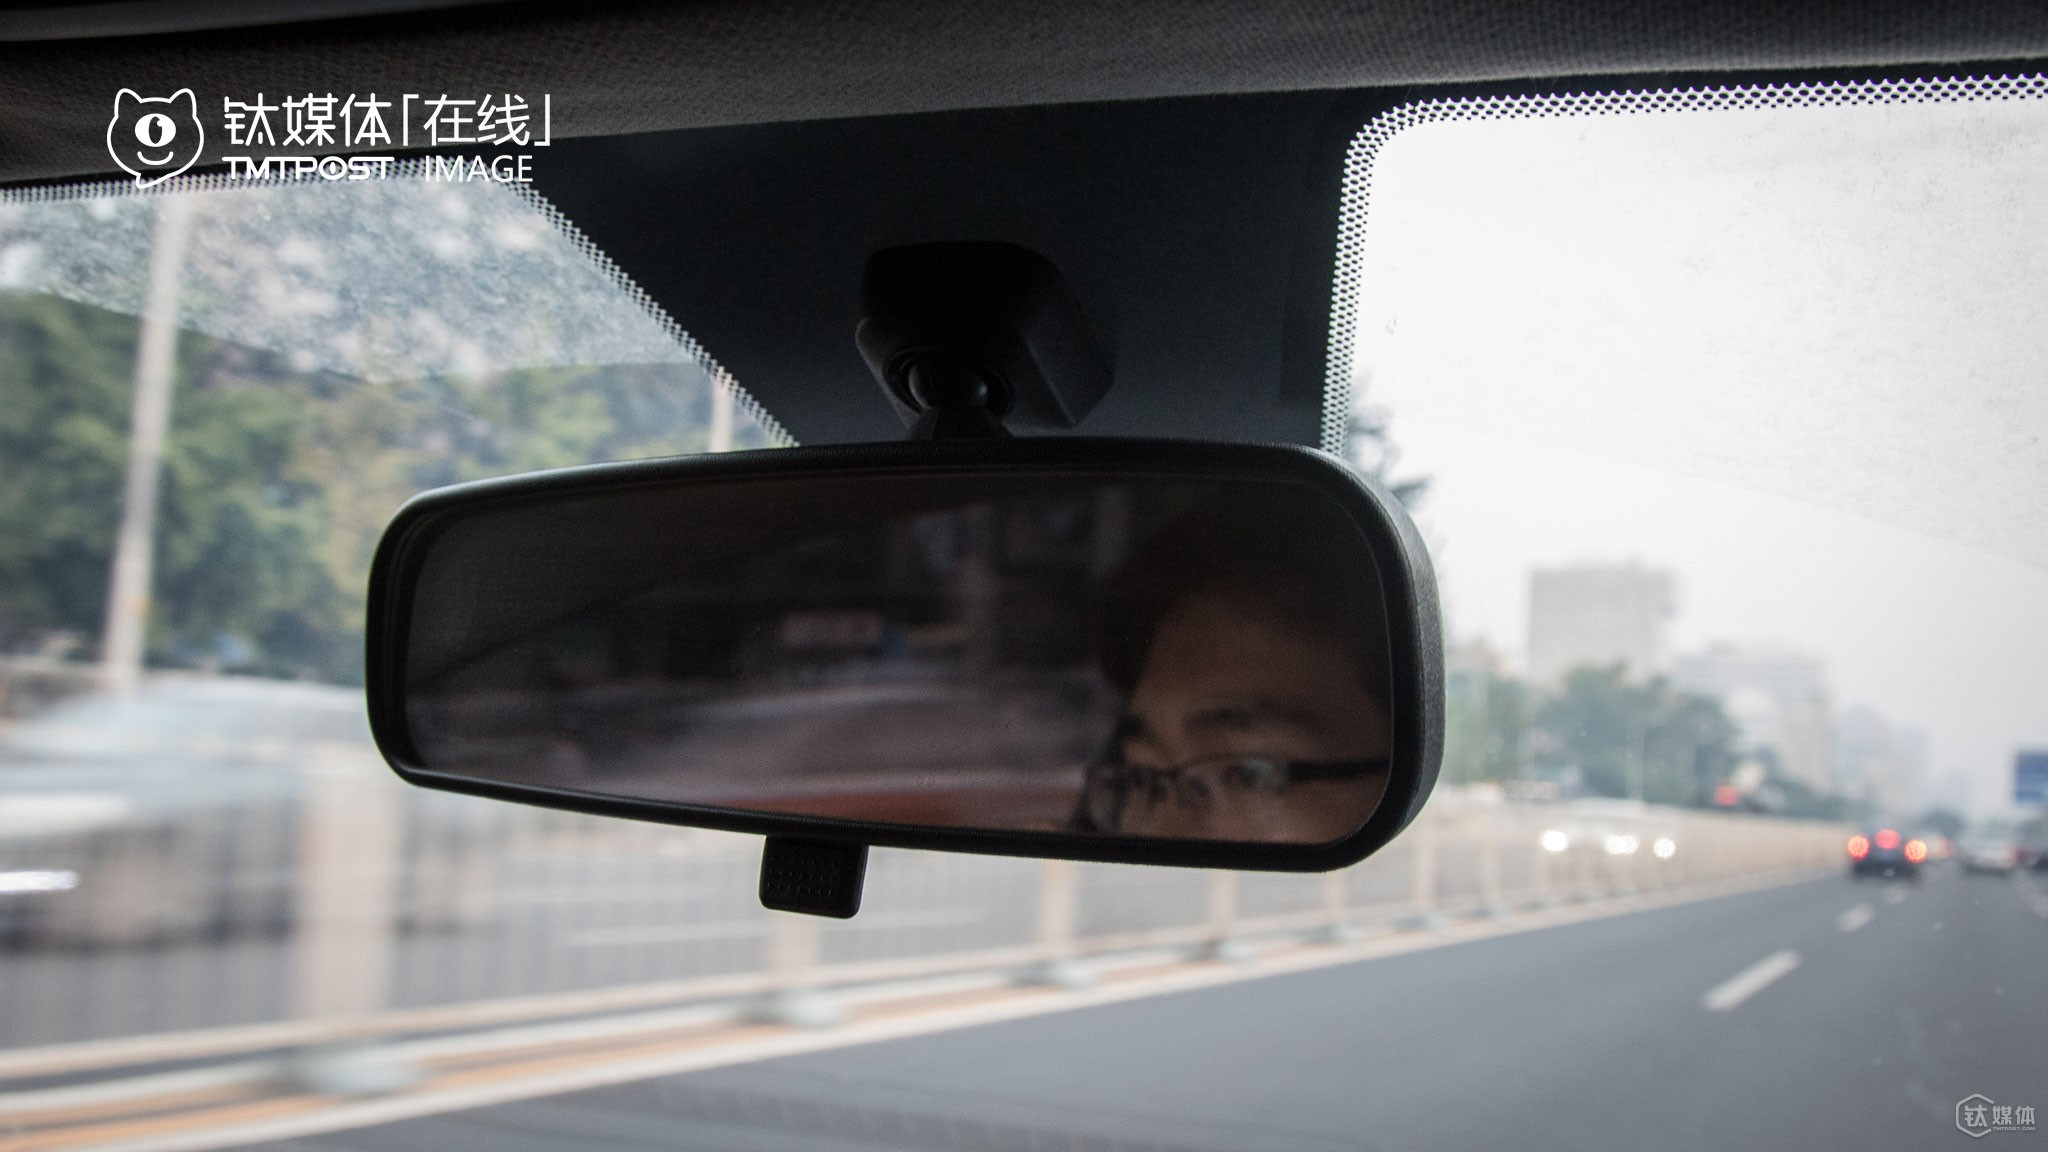 "Up till this July, Mr. Zhu had become a Didi driver for half a year. According to him, one of the biggest advantage of the job was that it gave him much freedom. In terms of their merger, he cared more about what policies Didi would carry out next. ""Although they merged, Didi will have the final say. I predict that Didi and Uber's price will become similar in the future,"" he told TMTpost. If Didi's incentives towards drivers do drop in the future, he will just give up and find something else to do."